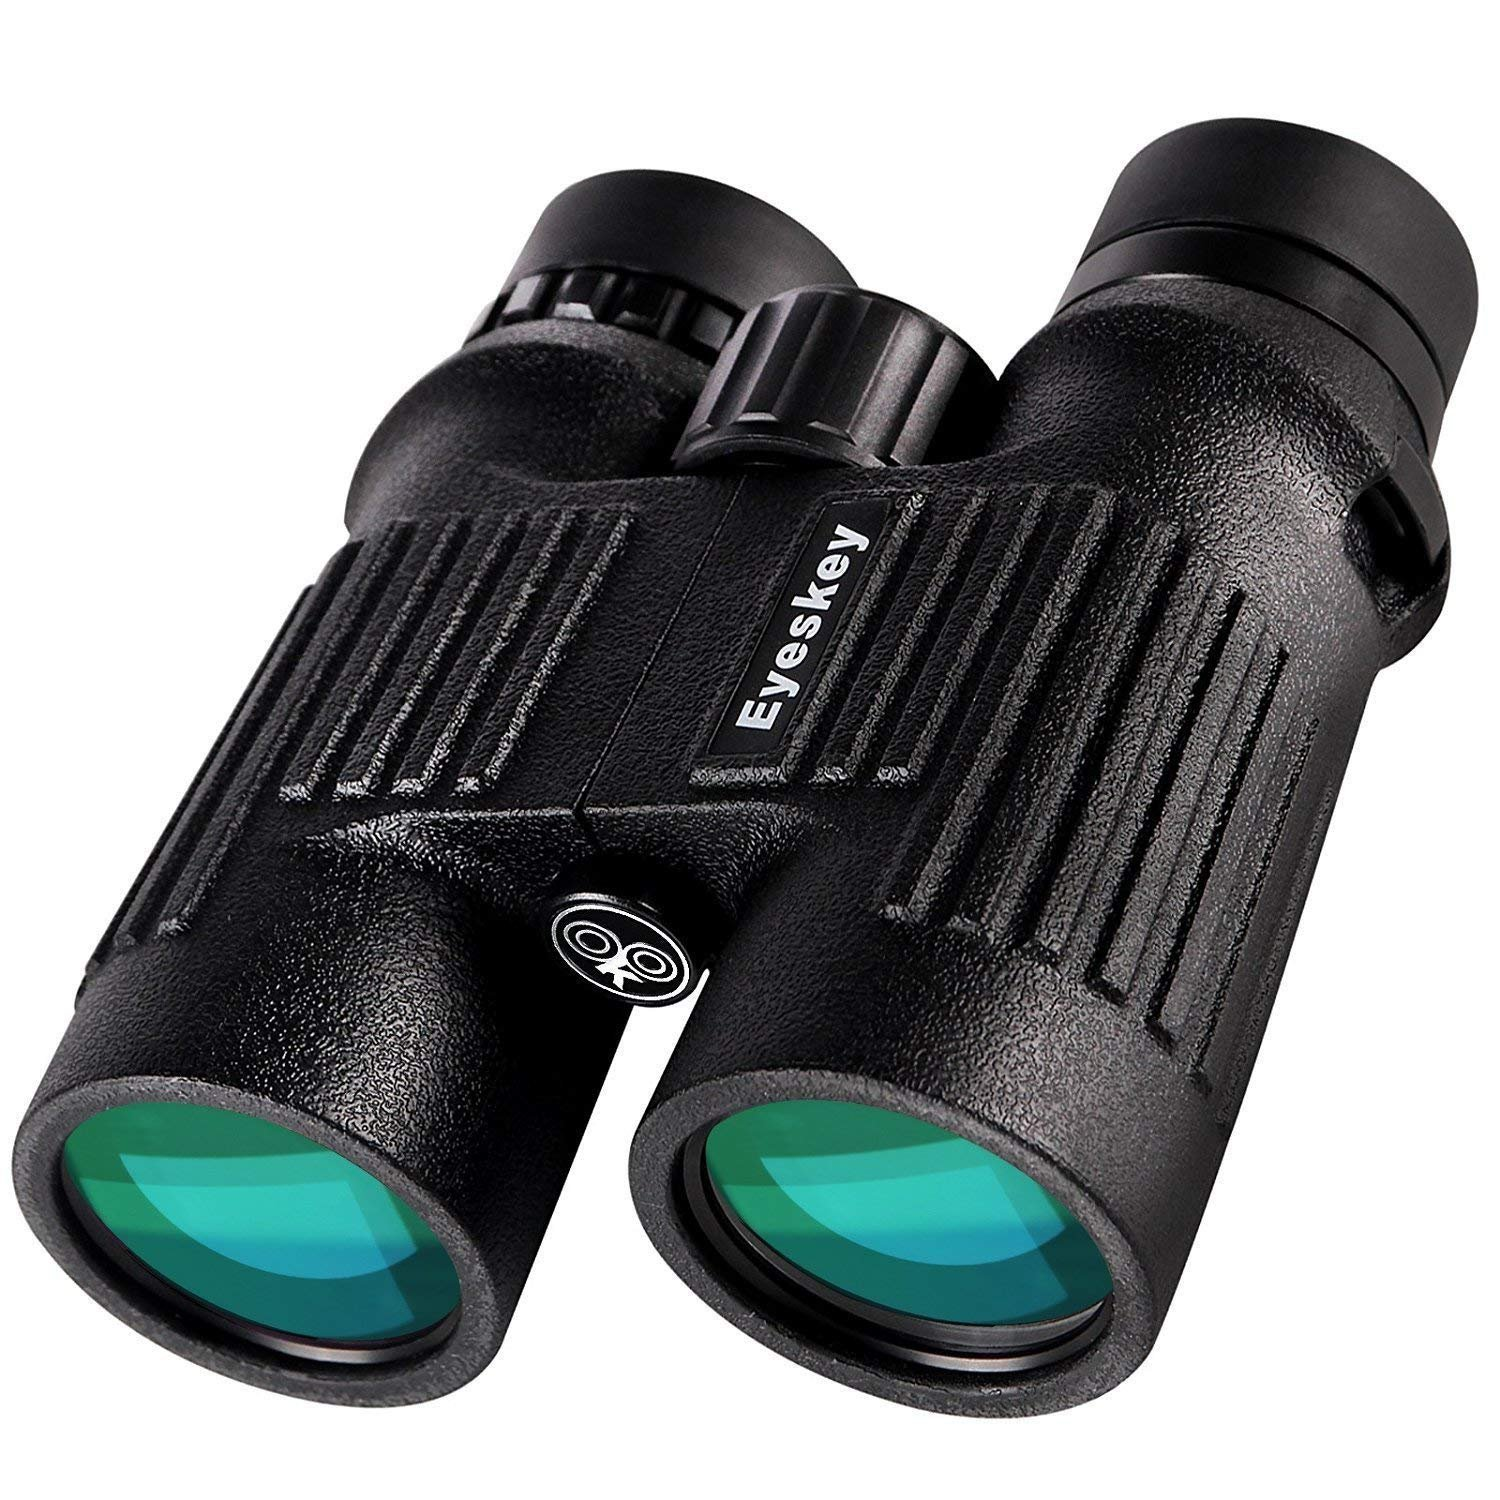 Eyeskey Binoculars for Adults-10X42 Waterproof Hunting Binoculars for Professional Traveler- Wide Field of View, More Clear -Great for Camping, Hunting, Travelling, Concert, Surveillance